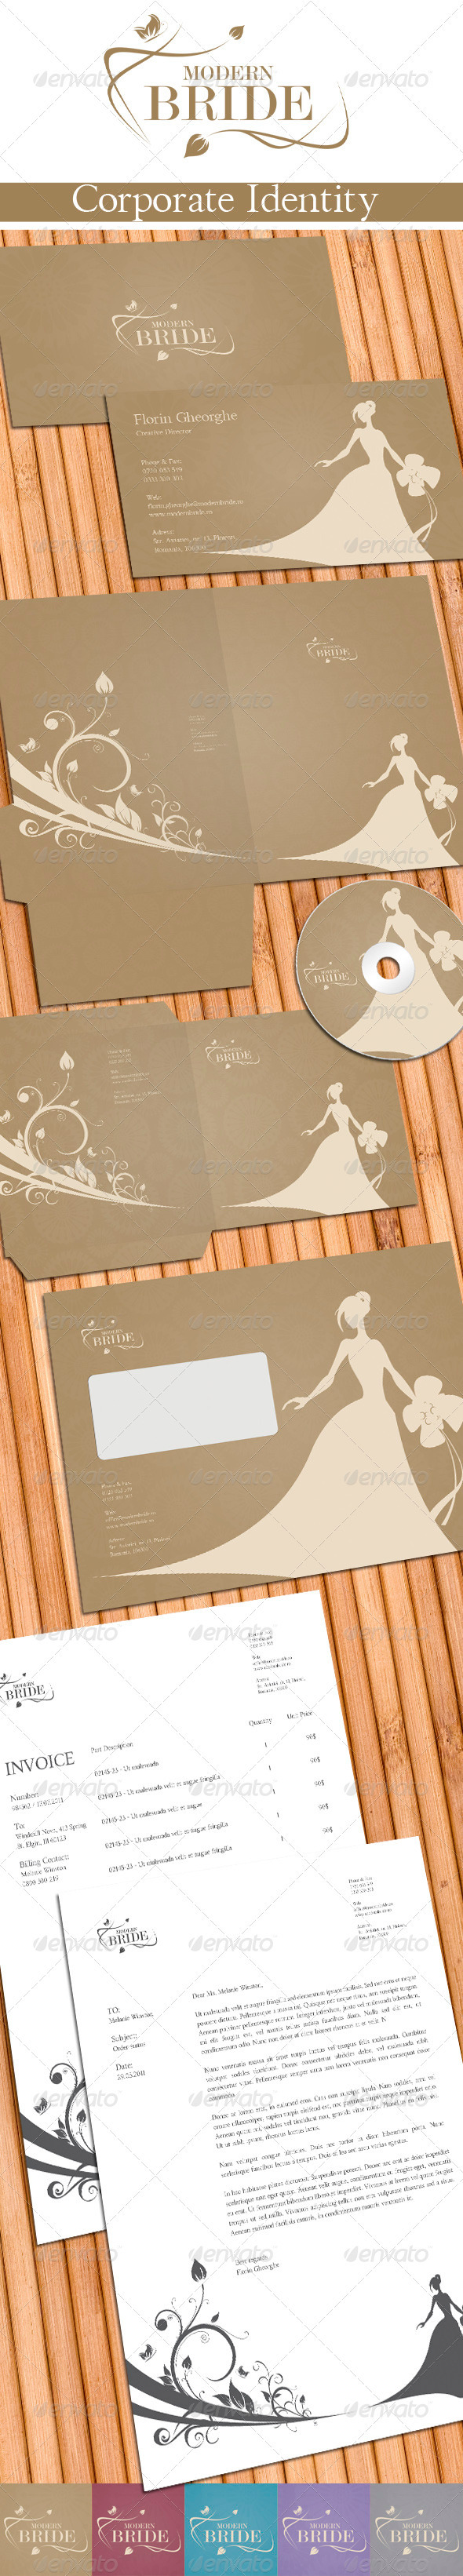 Modern Bride Corporate Identity - Stationery Print Templates